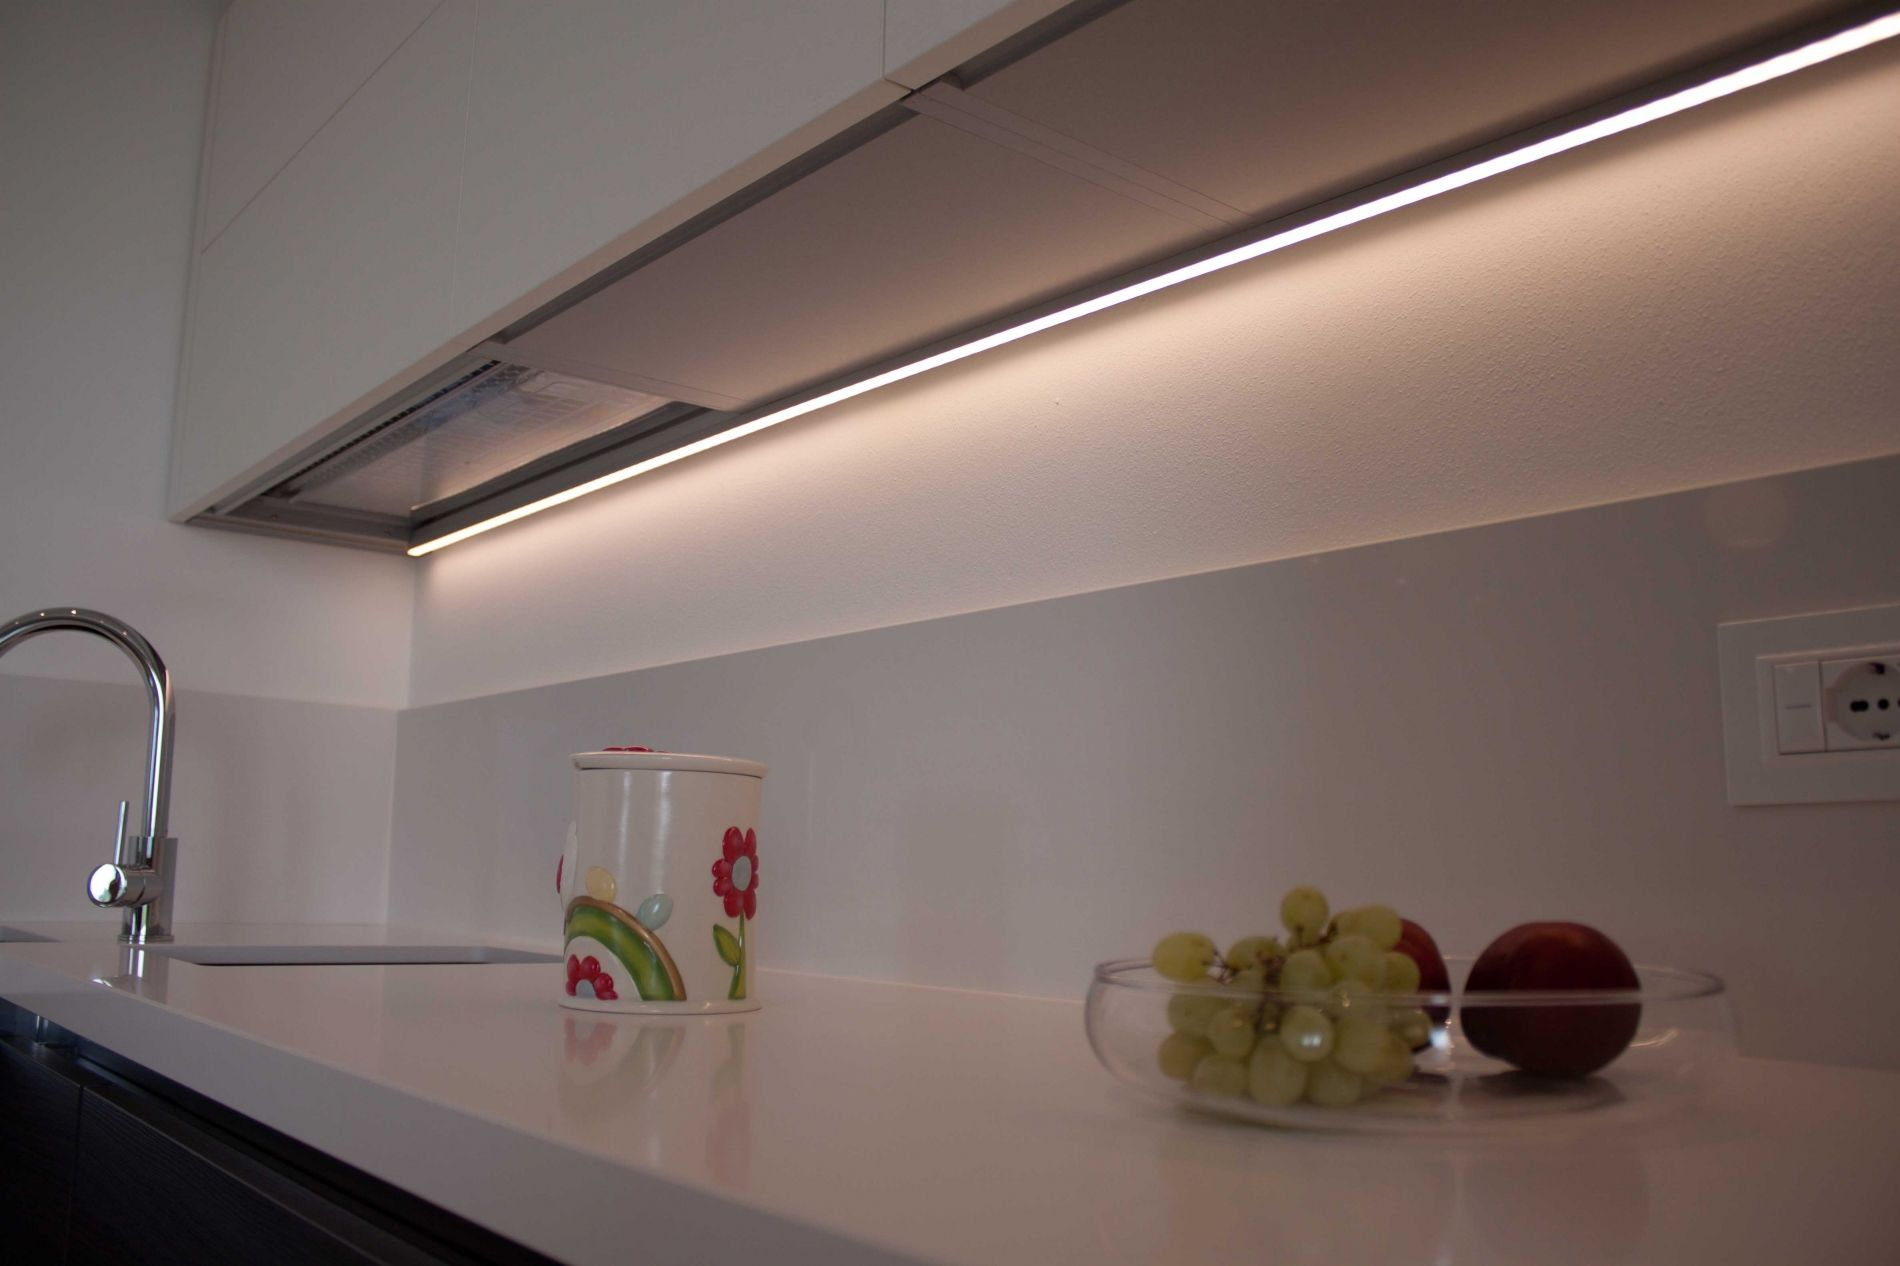 Barre a LED sottopensile per cucine | Lighting design | Pinterest ...